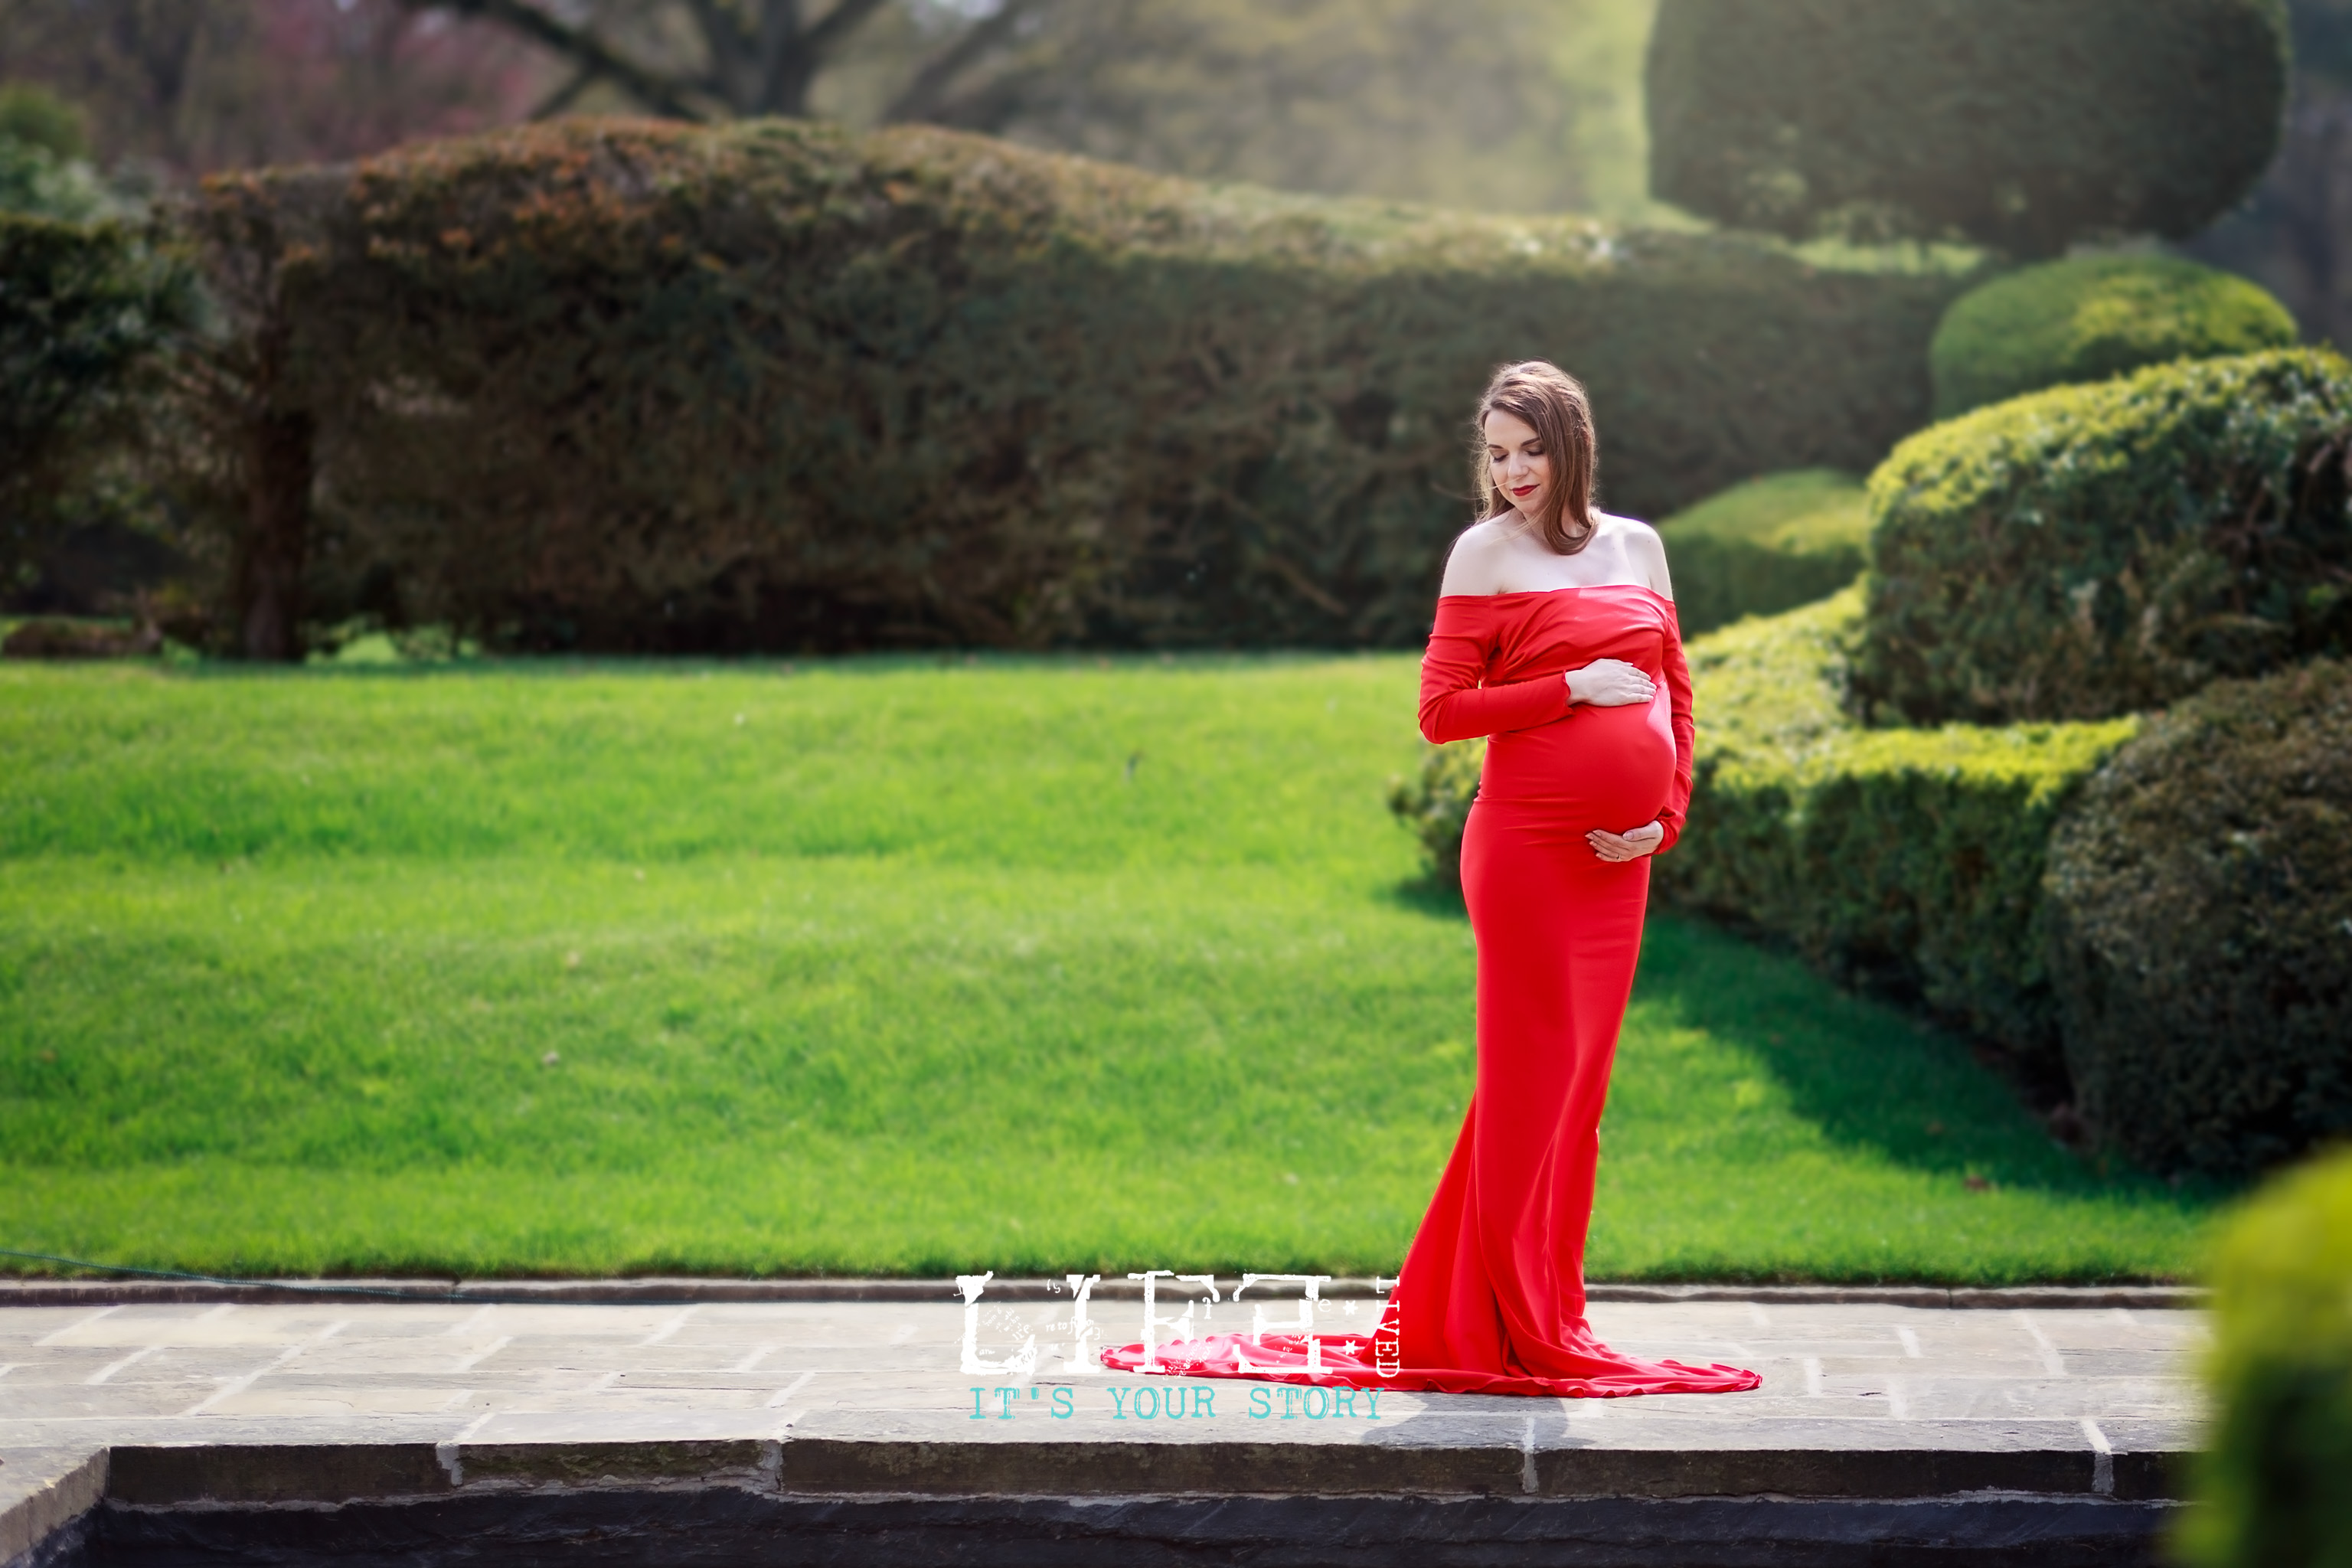 lincoln_maternity_photographer_sparkleprops-HD3-4